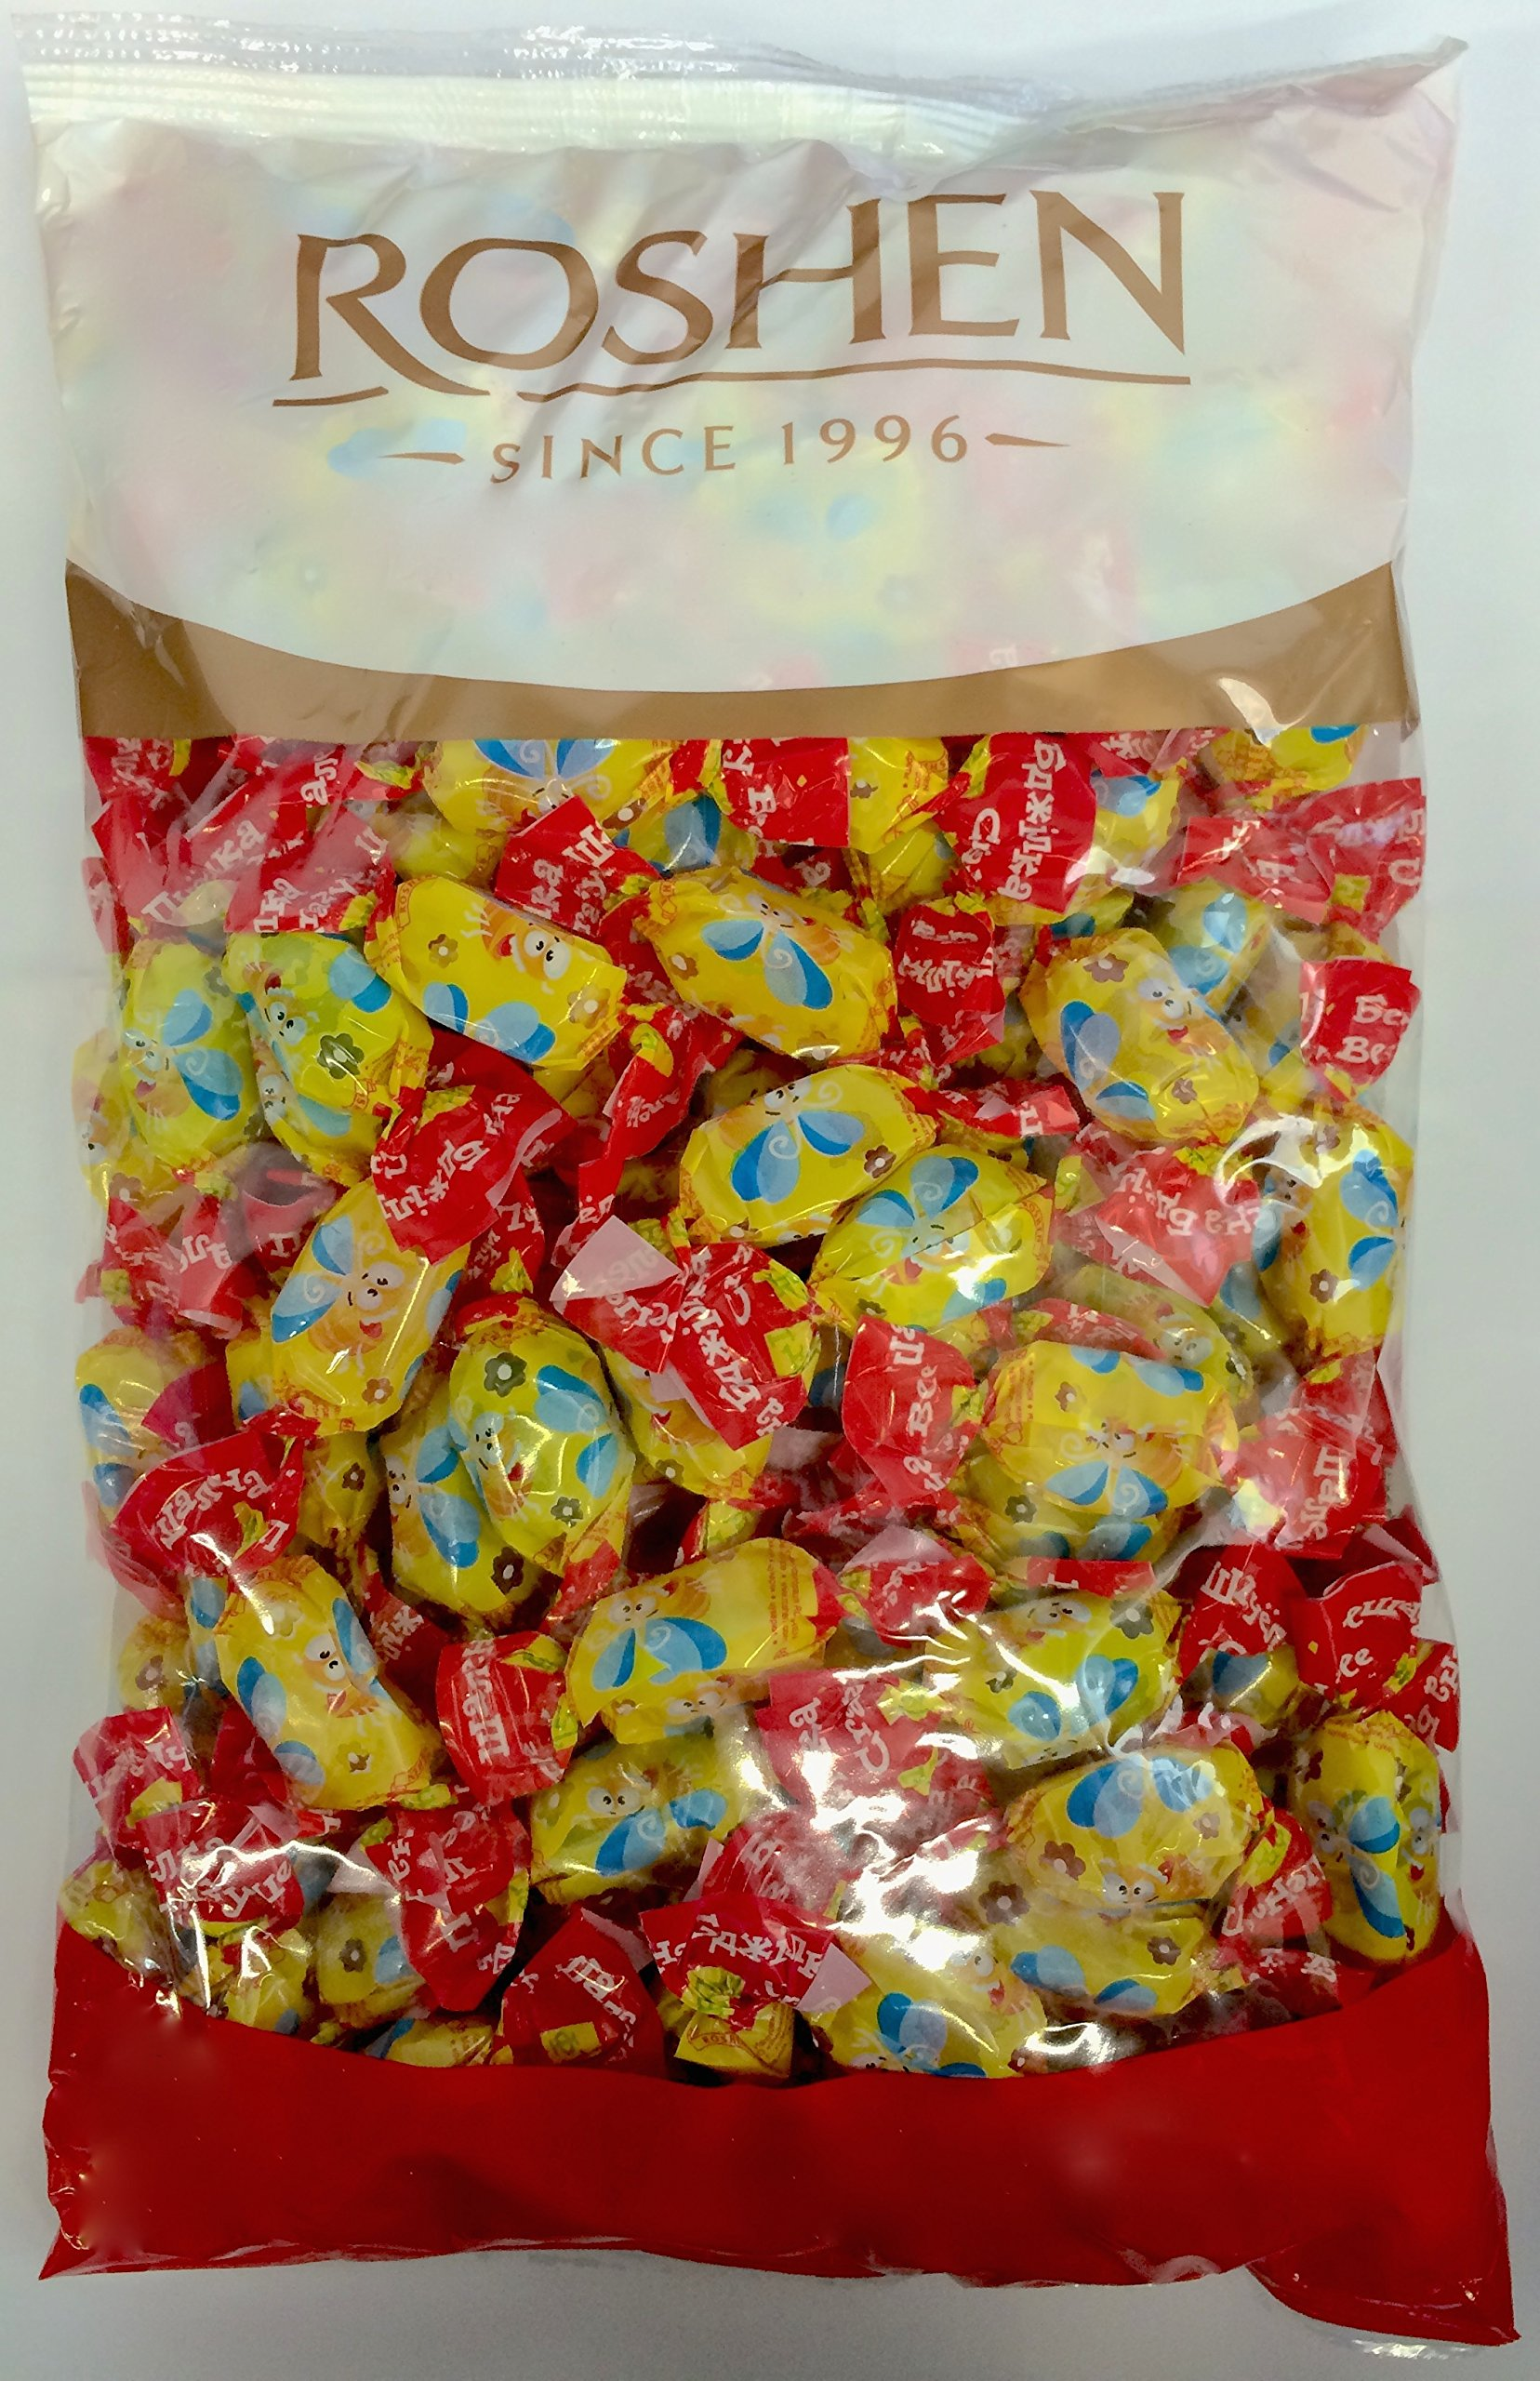 Roshen Crazy Bee Frutty Jelly Candy, 2.2 lbs/ 1 Kg